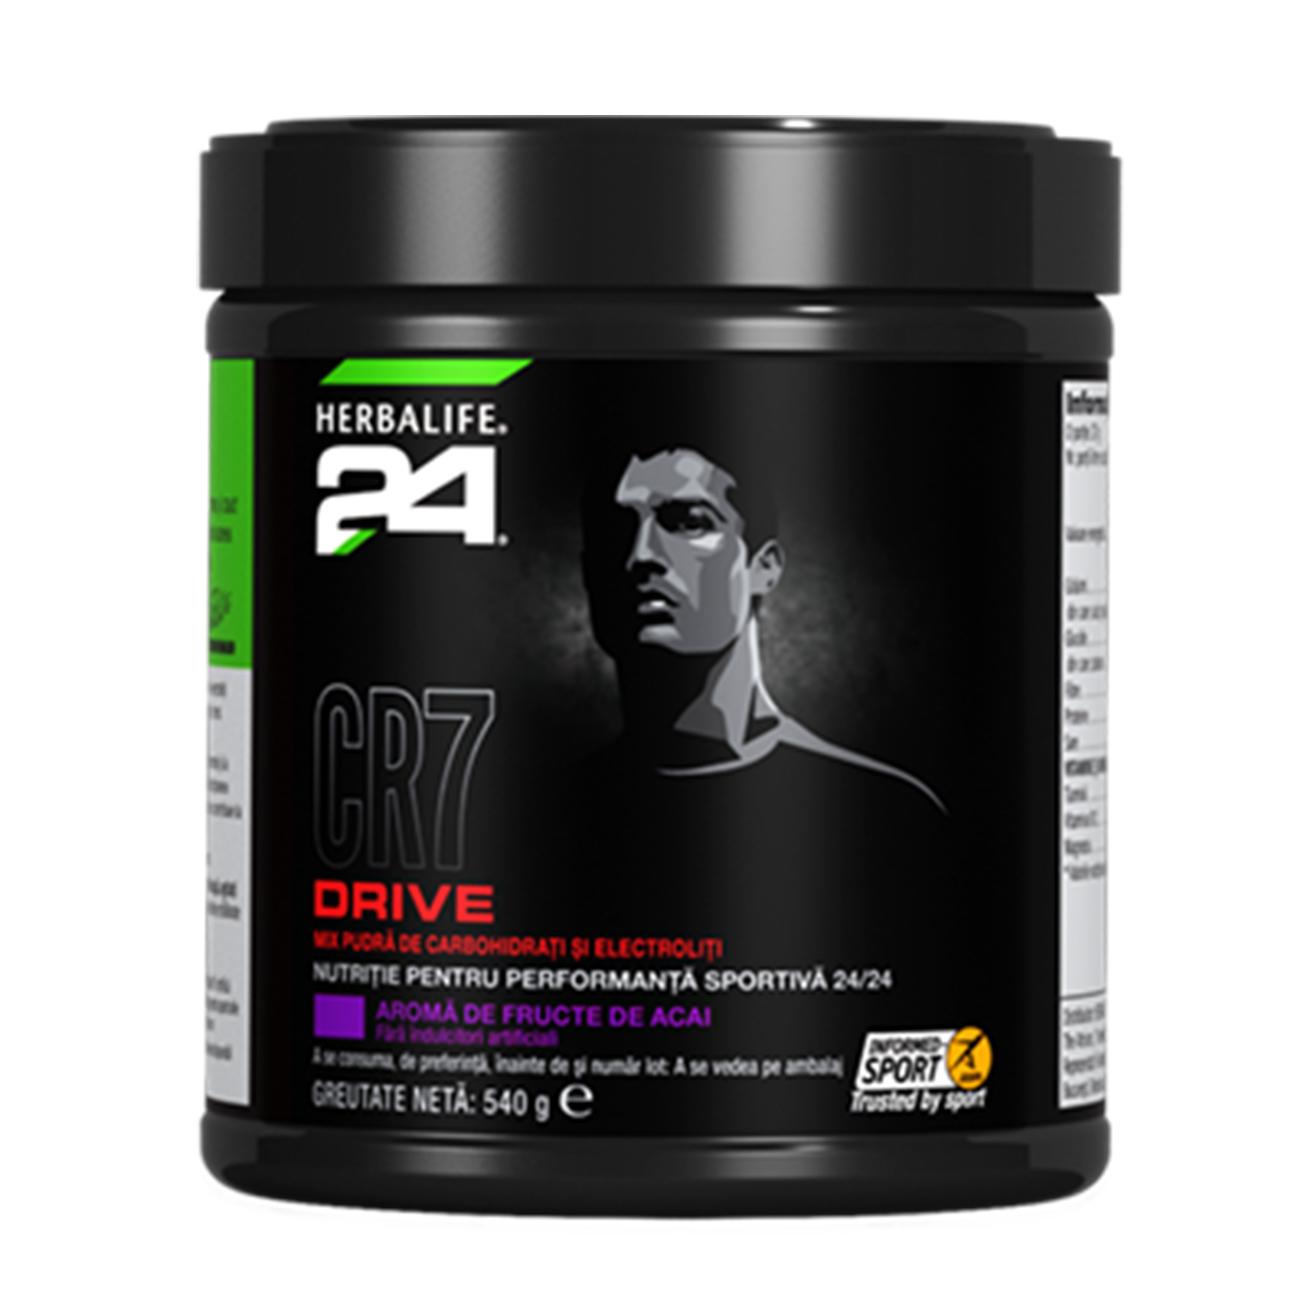 Herbalife24® CR7 Drive Sports Drink Acai Berry product shot